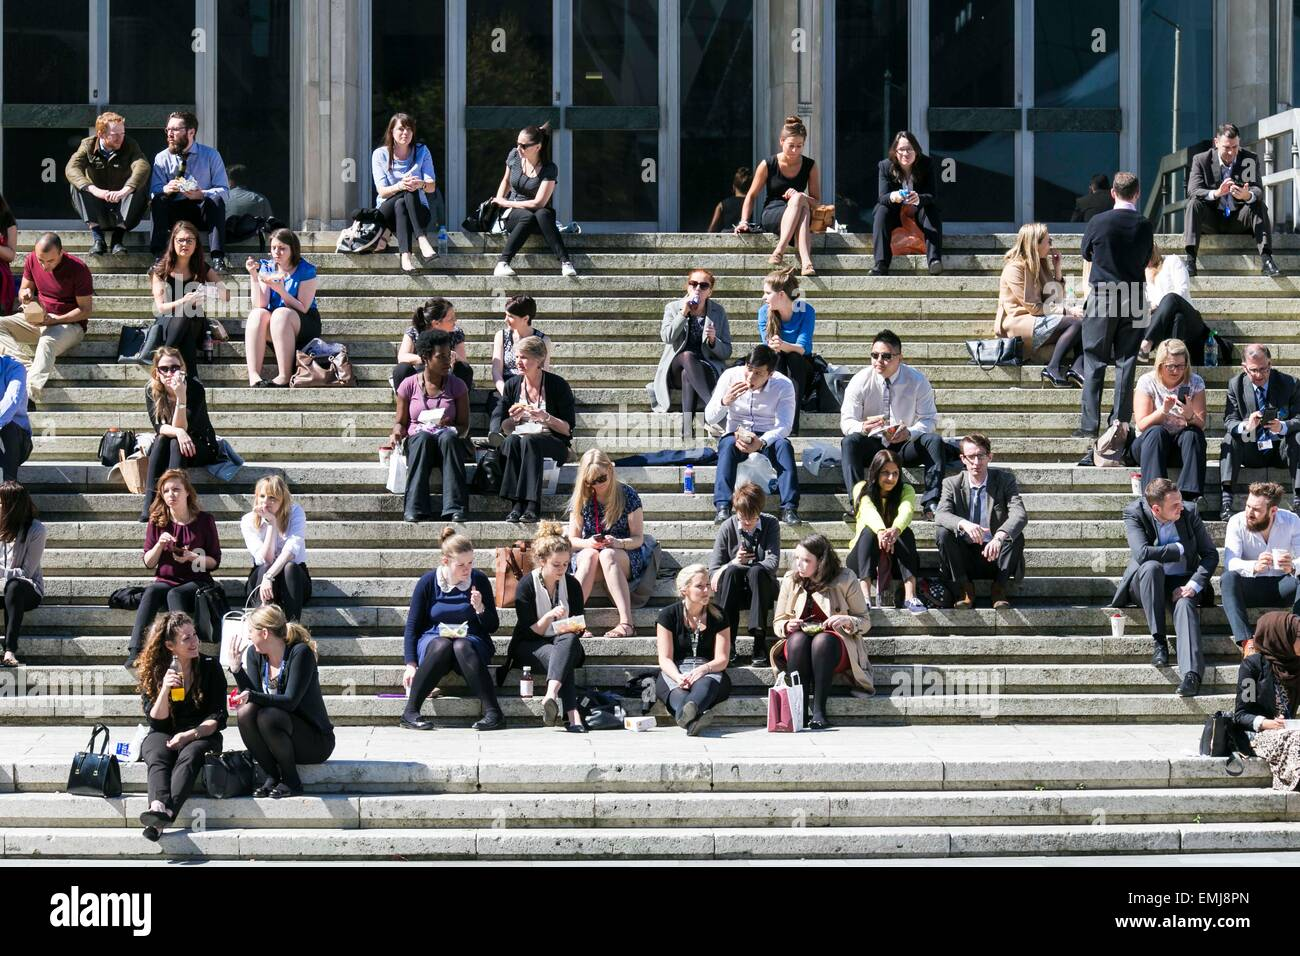 Sunny weather in Manchester city centre today (Tuesday 21st April 2015). Lunch on the steps of Manchester Crown - Stock Image